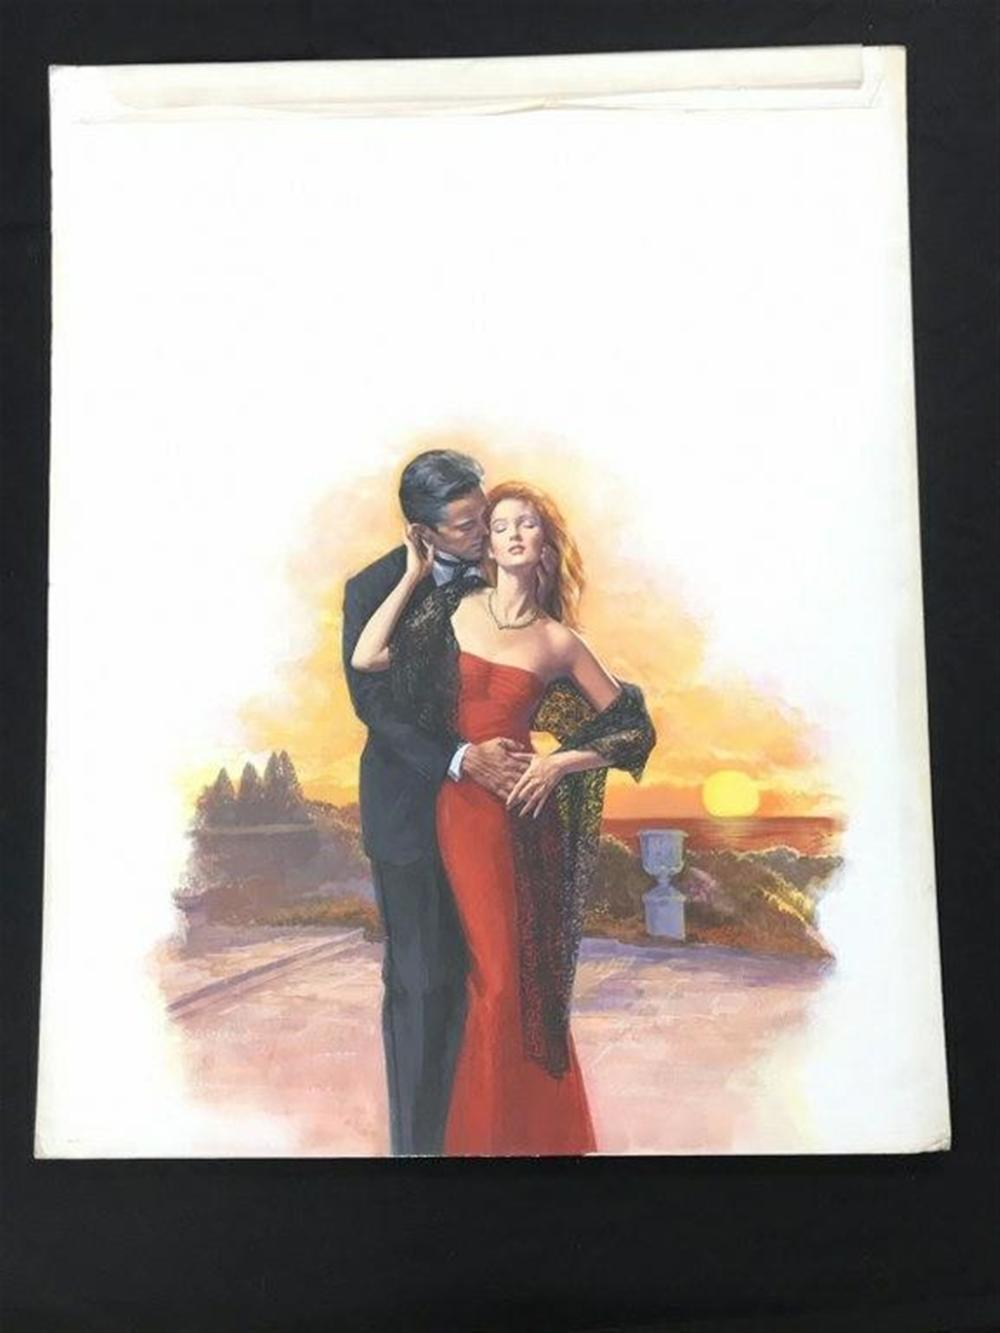 "ORIGINAL ROMANCE NOVEL FRONT COVER ILLUSTRATION BY BARNETT PLOTKIN, BOOK TITLED THE BARON. JANUARY 1988, BANTAM BOOKS, MEASURES 25"" X 20"", FROM A COLLECTION WE ARE SELLING."